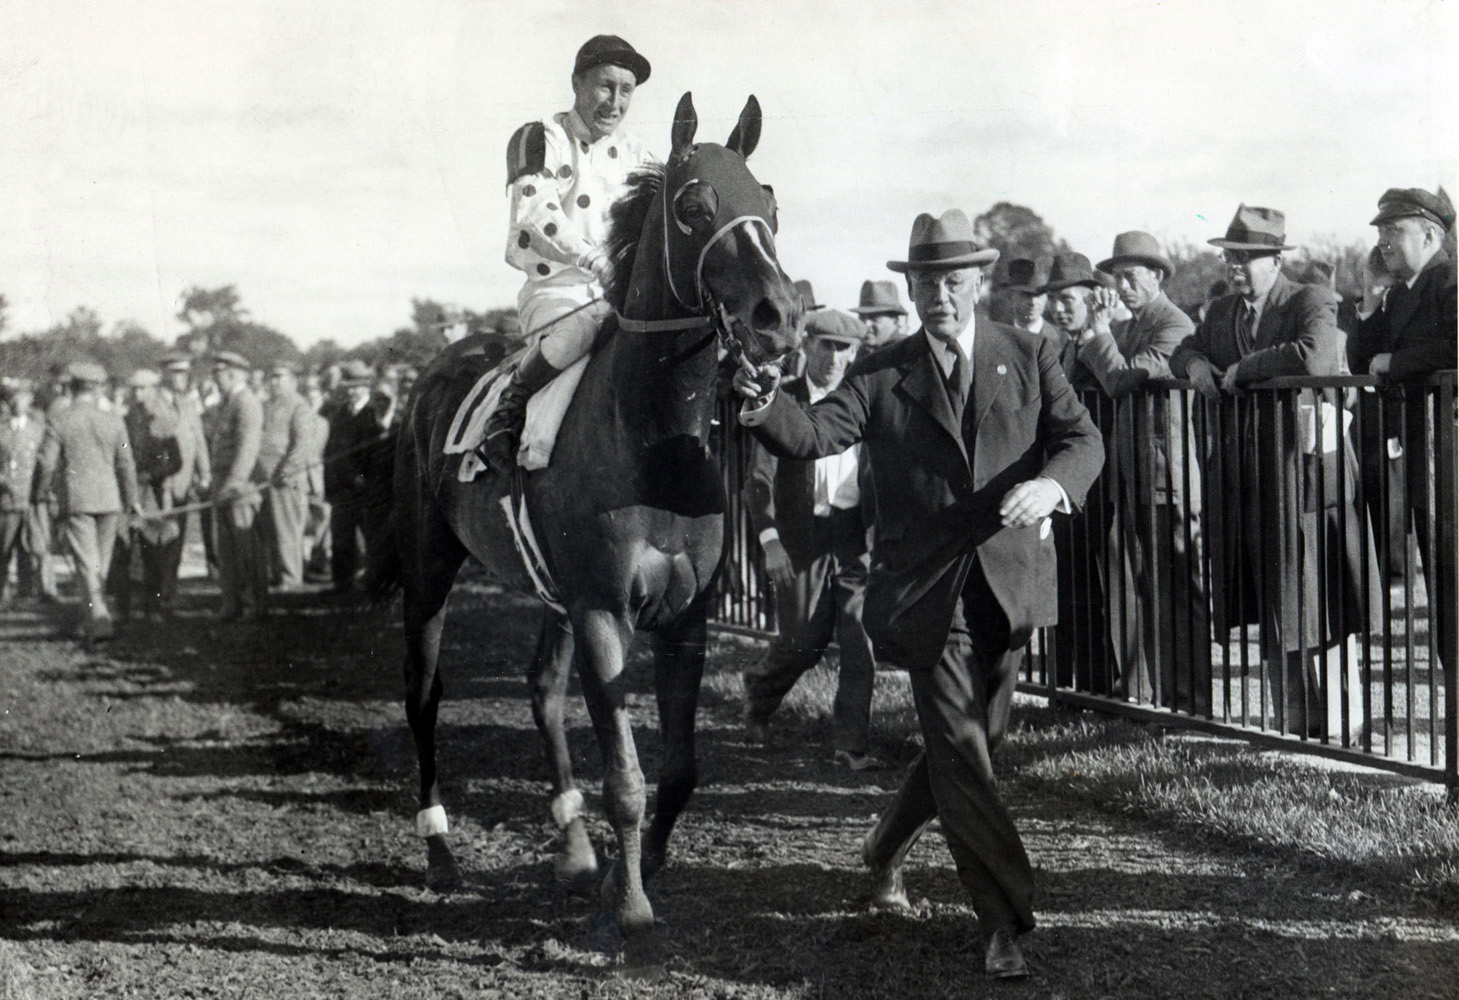 James Stout and Granville being led in by William Woodward after winning the 1936 Lawrence Realization at Belmont Park (Museum Collection)